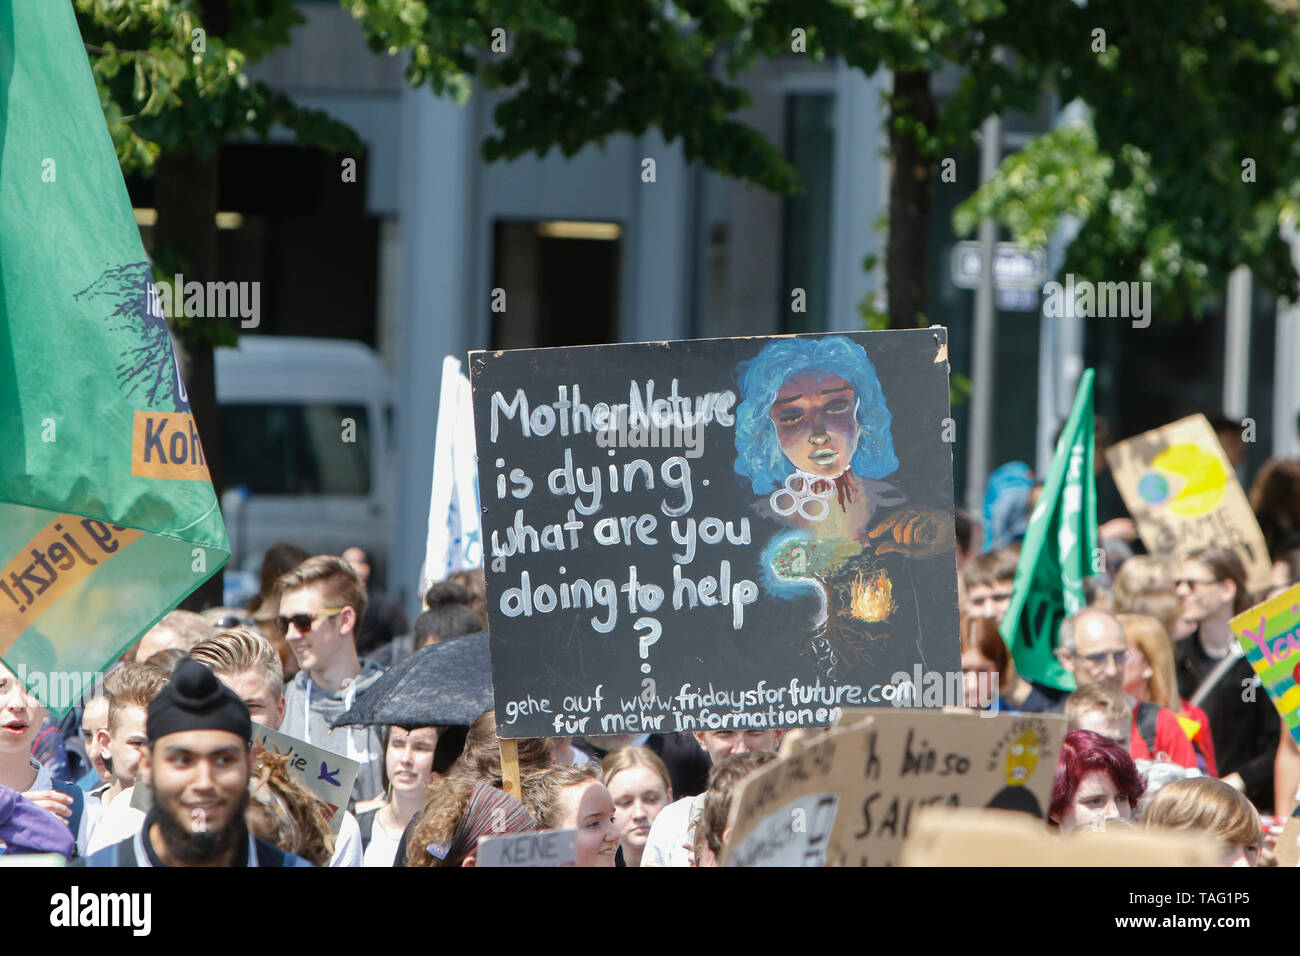 A protester carries a sign that reads 'Mother Nature is dying. What are you doing about'. Around 4,500 young people marched through Frankfurt to the European Central Bank, to protest against the climate change and for the introduction of measurements against it. The protest took place as part of an Europe wide climate strike, two days ahead of the 2019 European elections. (Photo by Michael Debets/Pacific Press - Stock Image